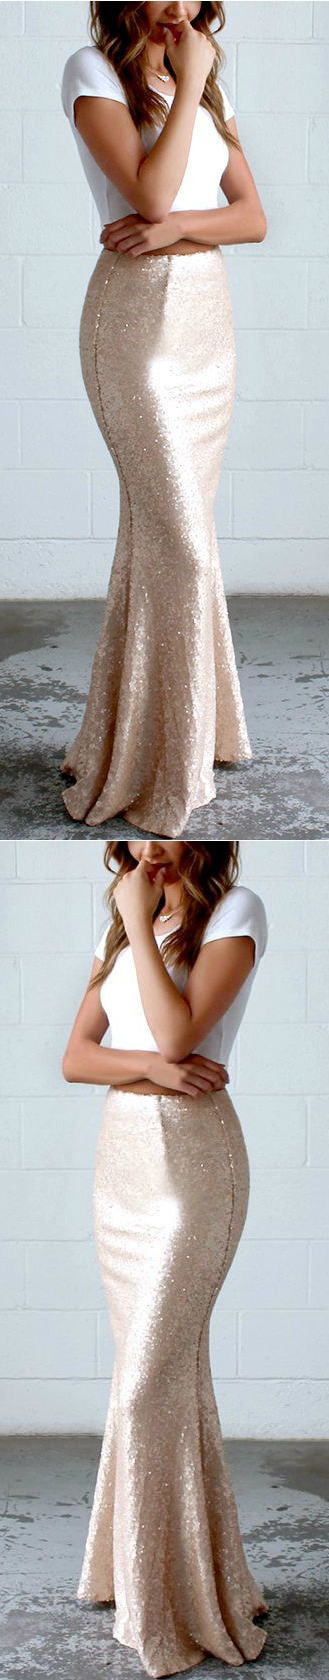 Simple Mermaid Prom Dress, Cap Sleeves Long Party Dress, Gold Sequins Evening